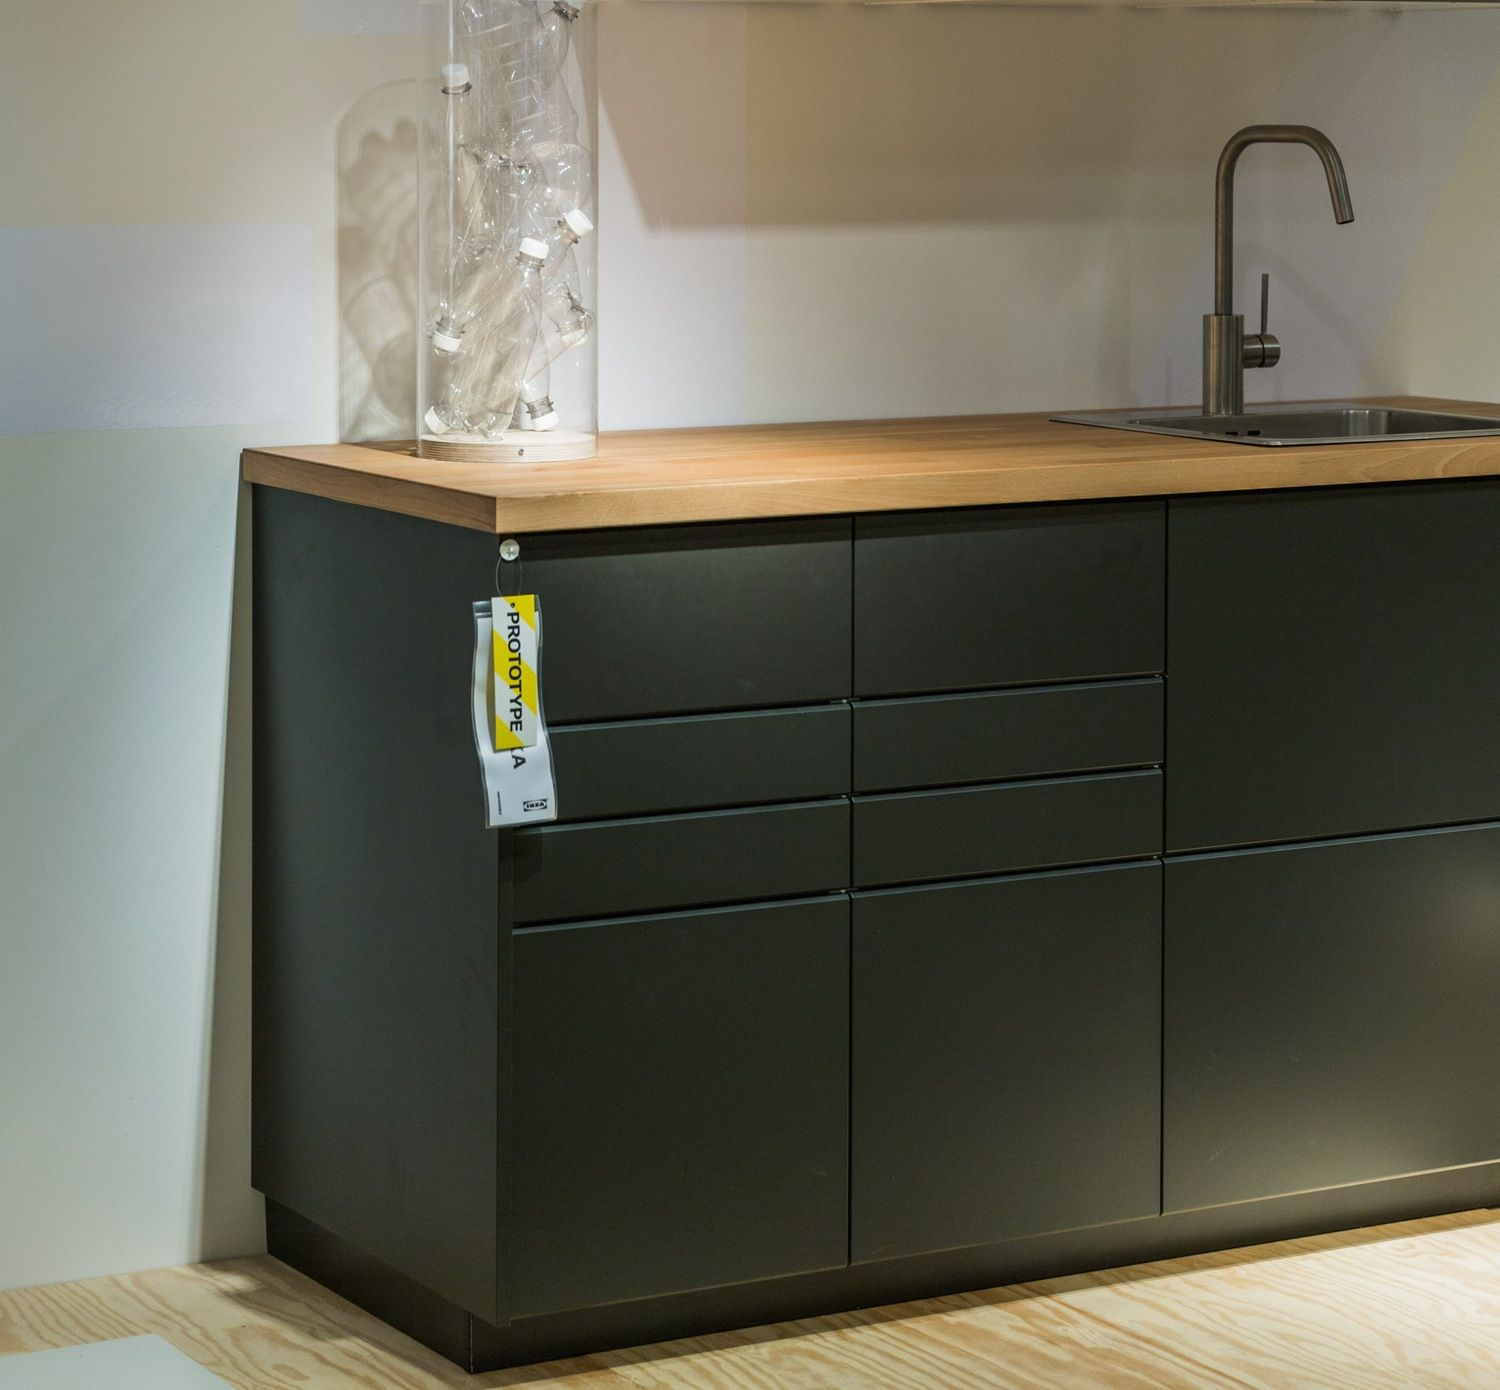 Ikea S New Kitchen Cabinets Are Made With Recycled Plastic Bottles Recycled Kitchen Ikea New Kitchen Plastic Kitchen Cabinets